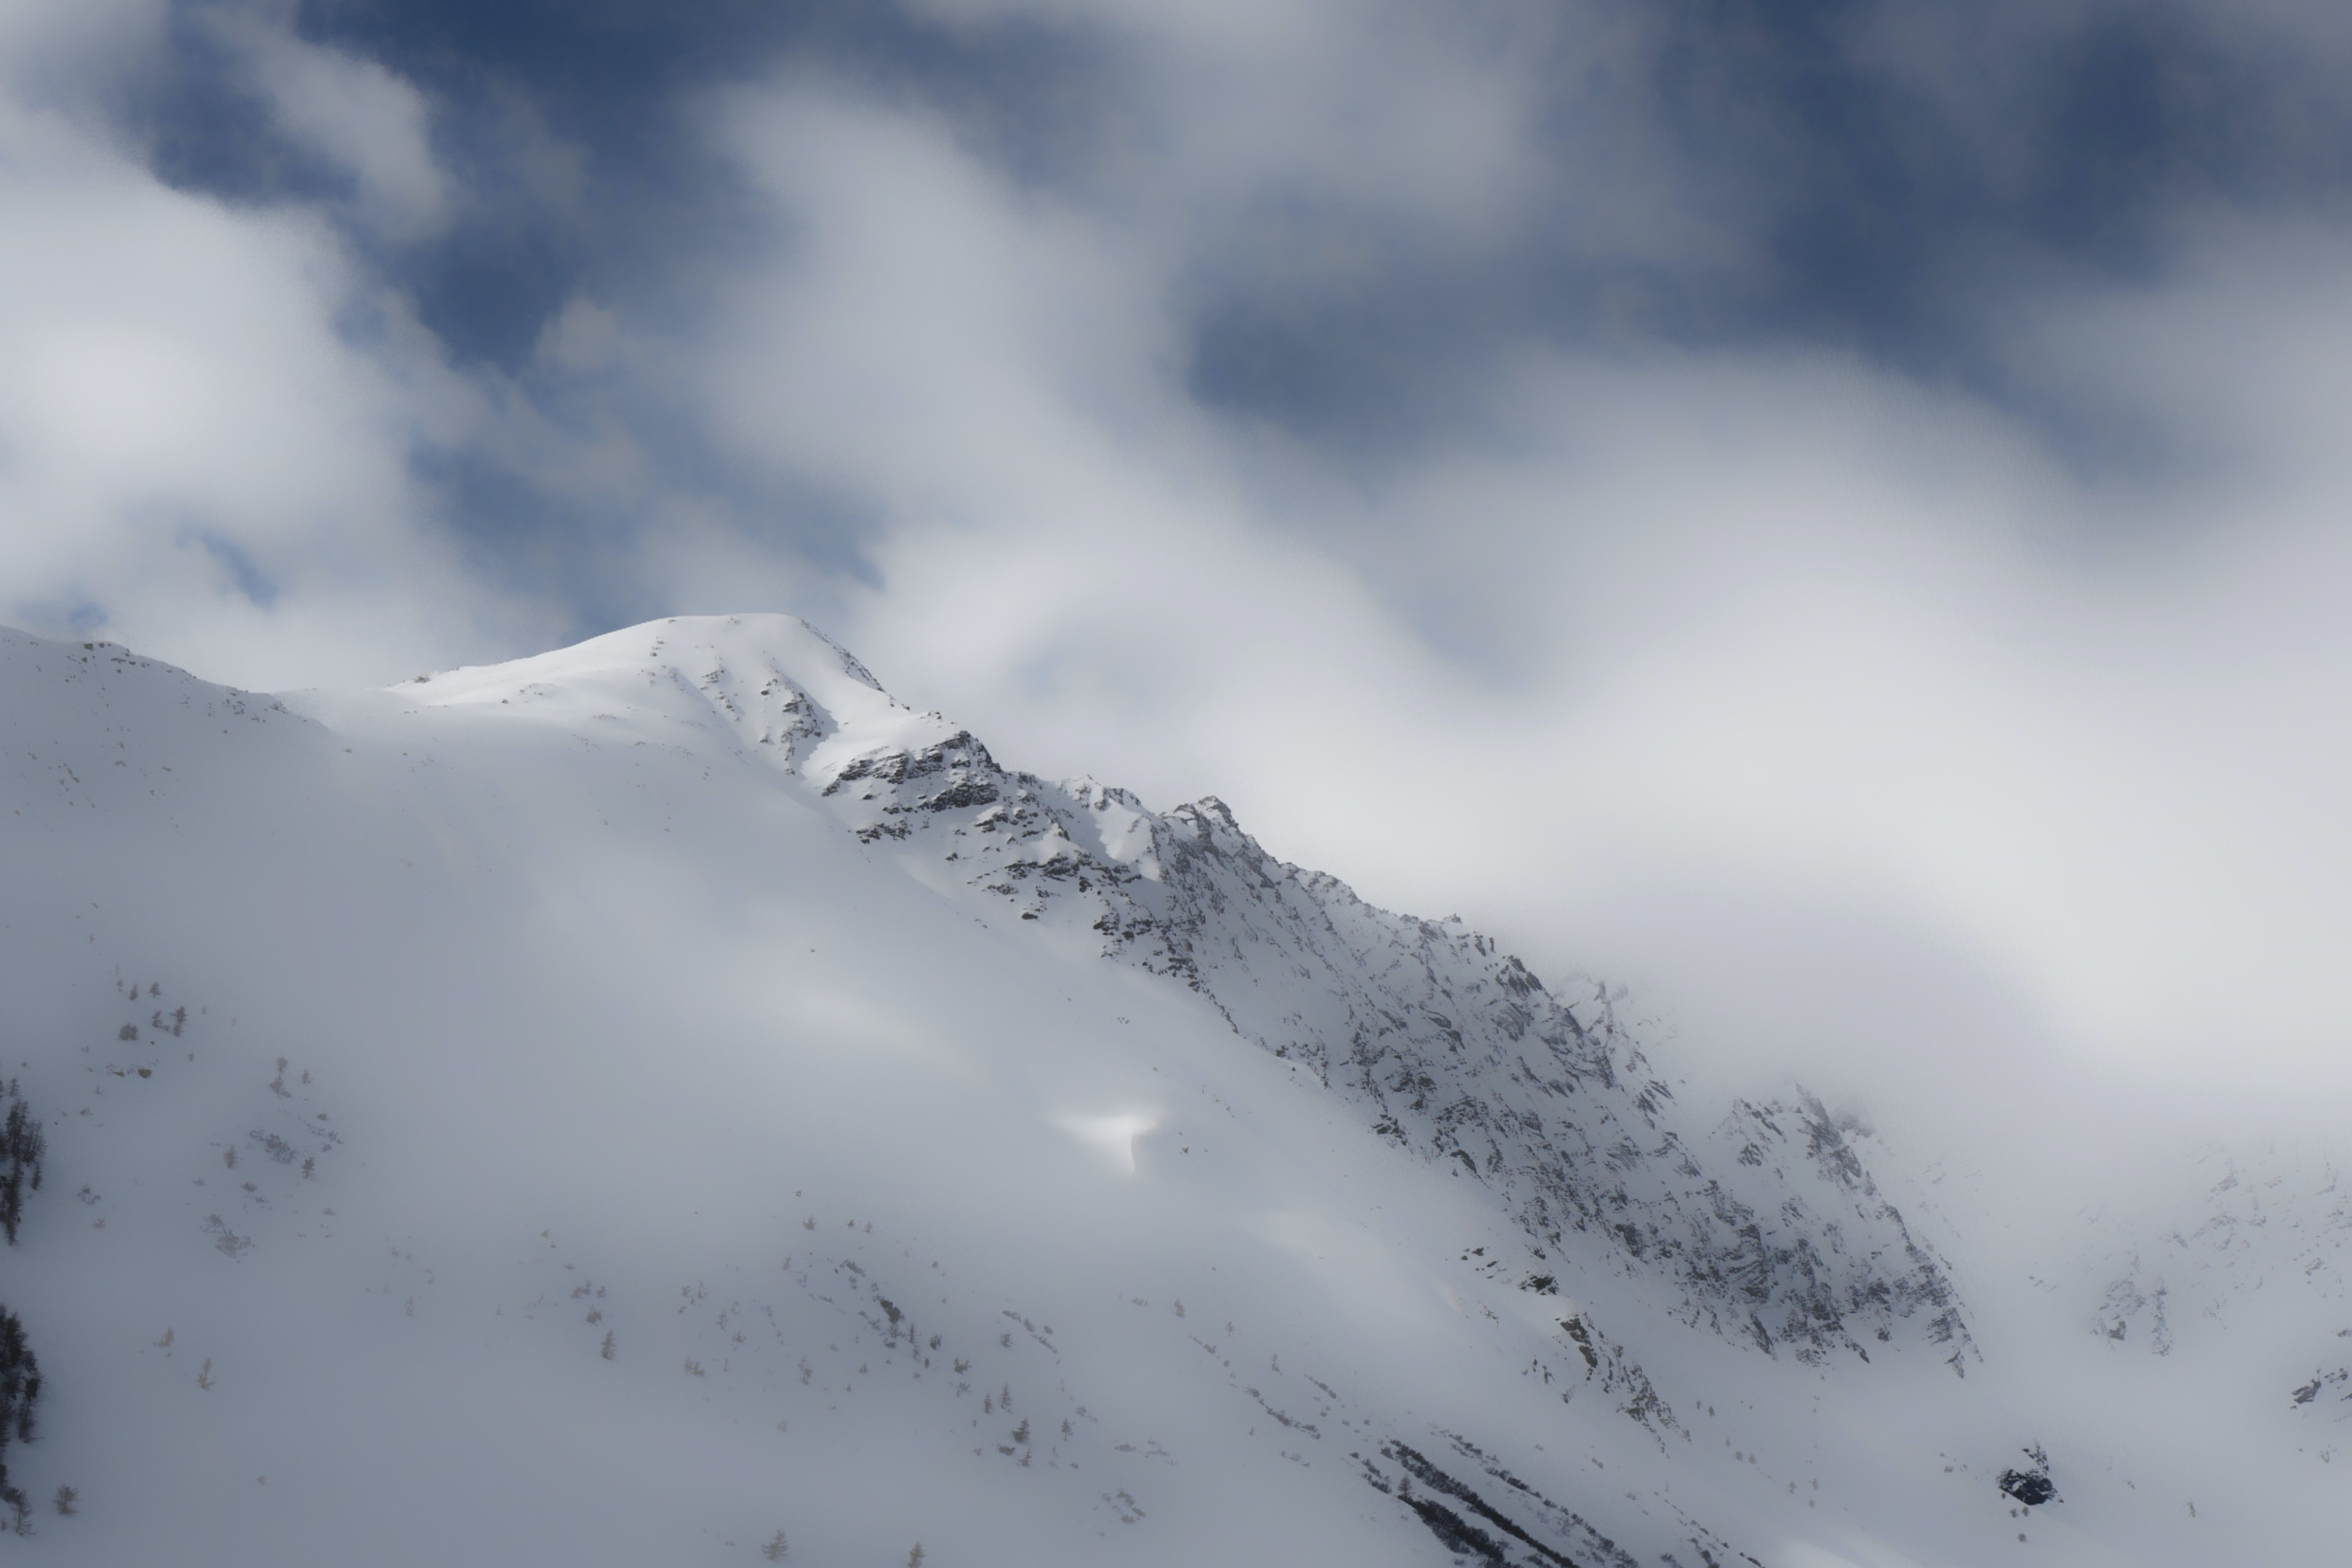 Clouds cover a snowy mountain ridge